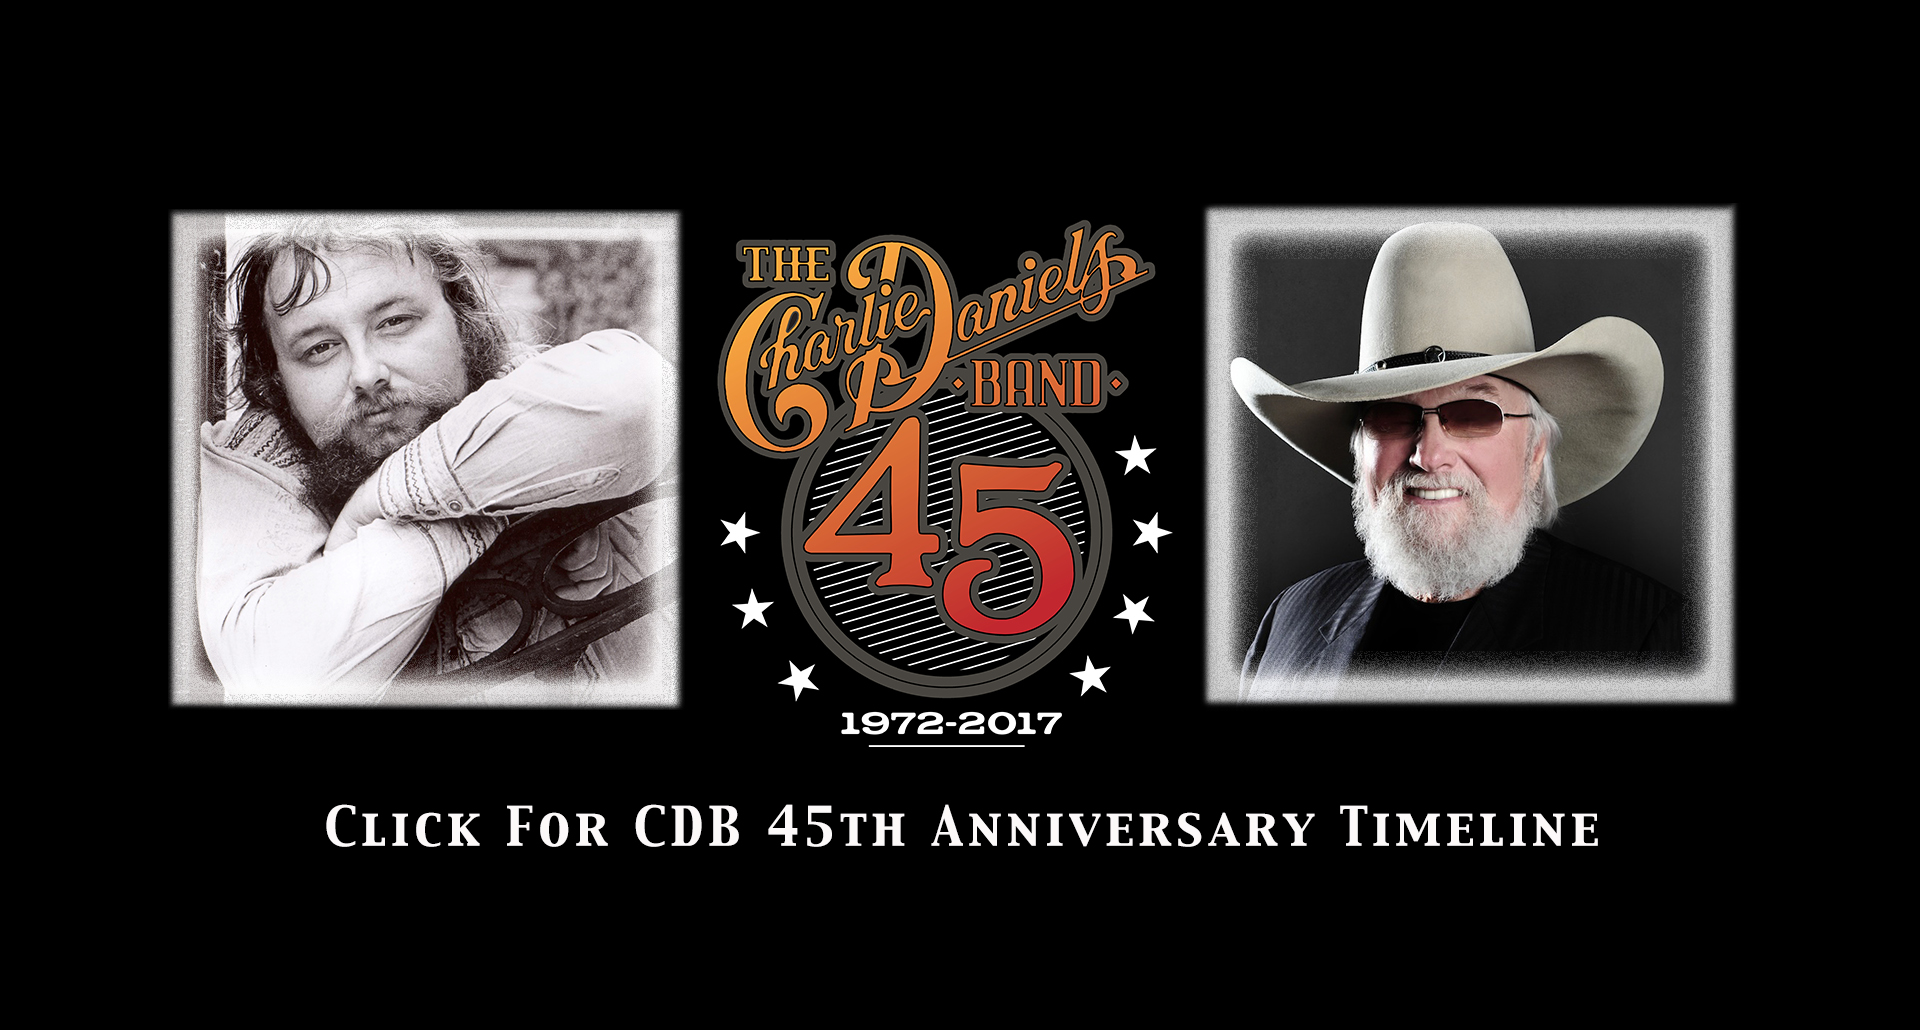 CDB 45th Anniversary